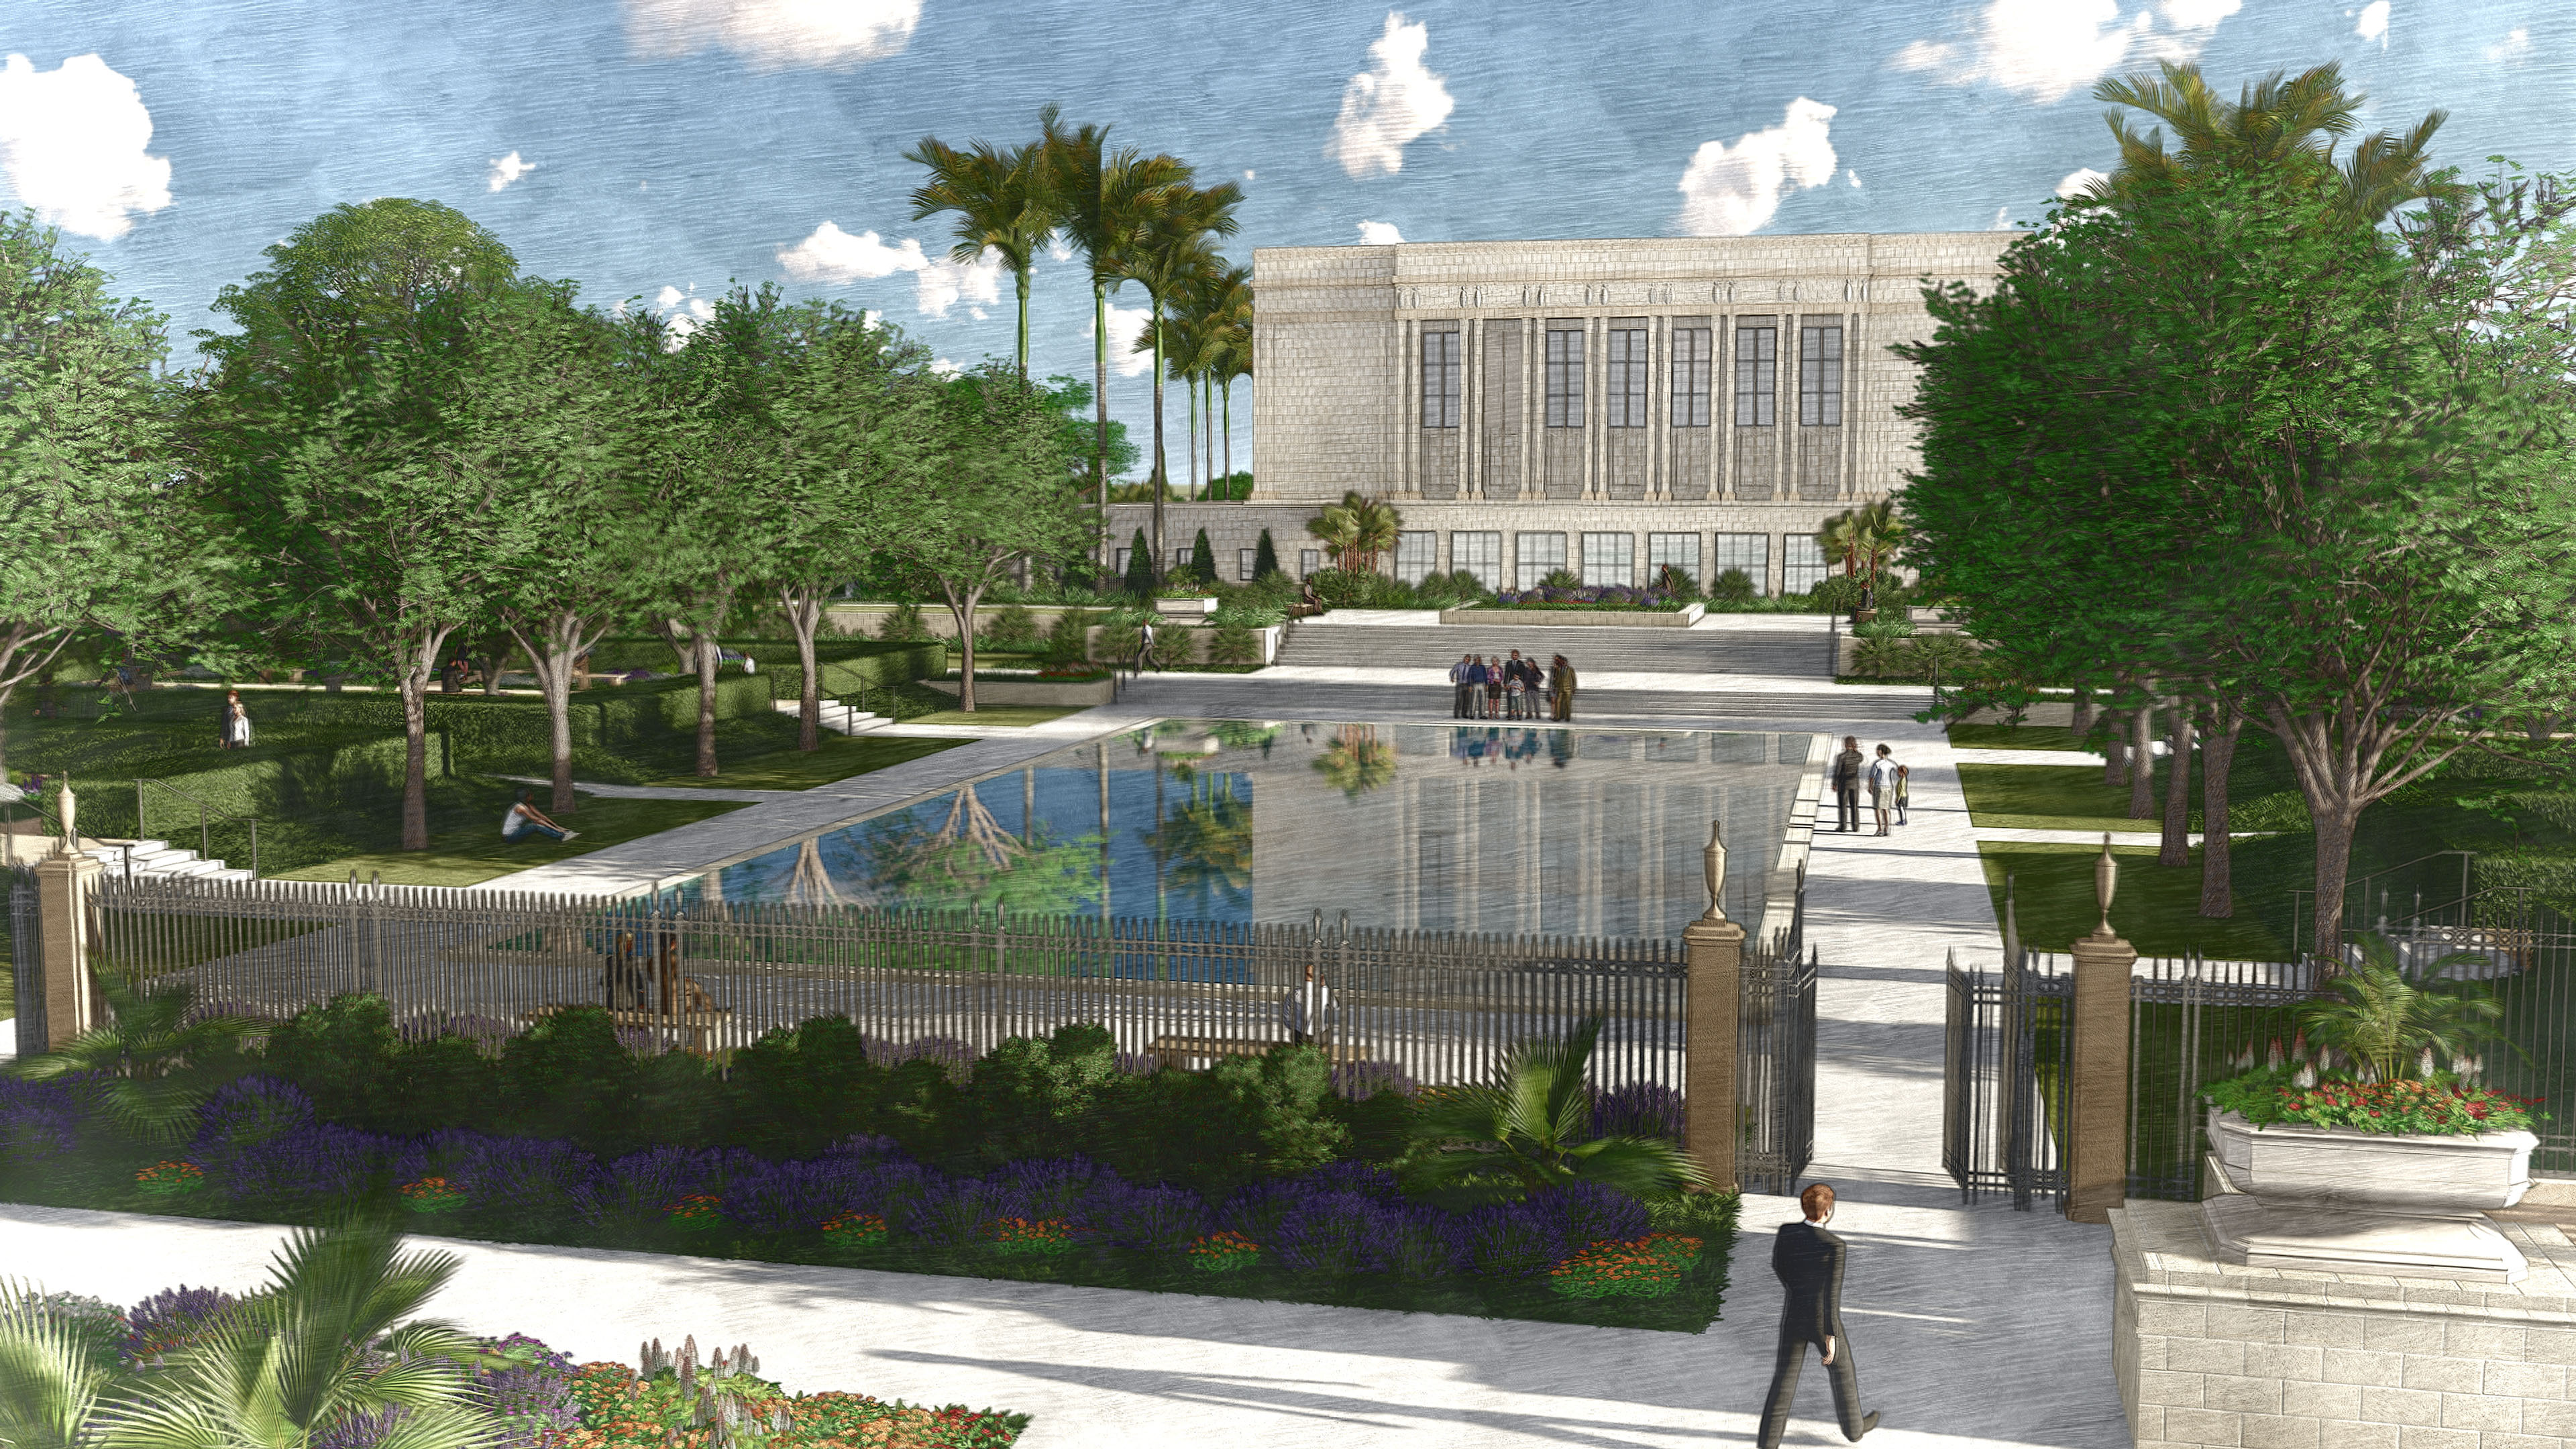 Rendering of the Mesa Arizona Temple from the north side.